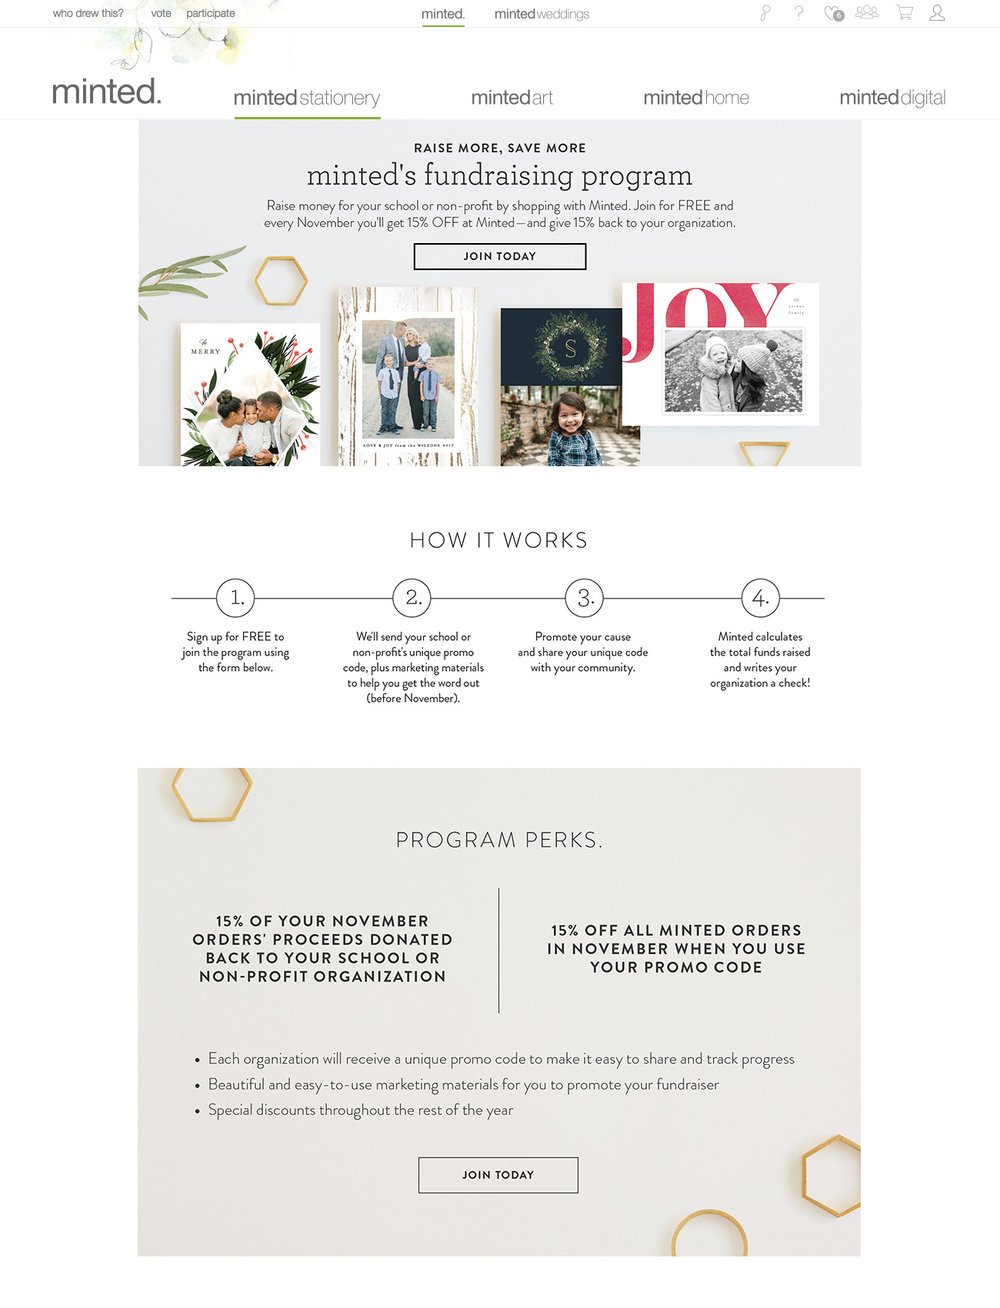 Minted's Fundraising Program Landing Page